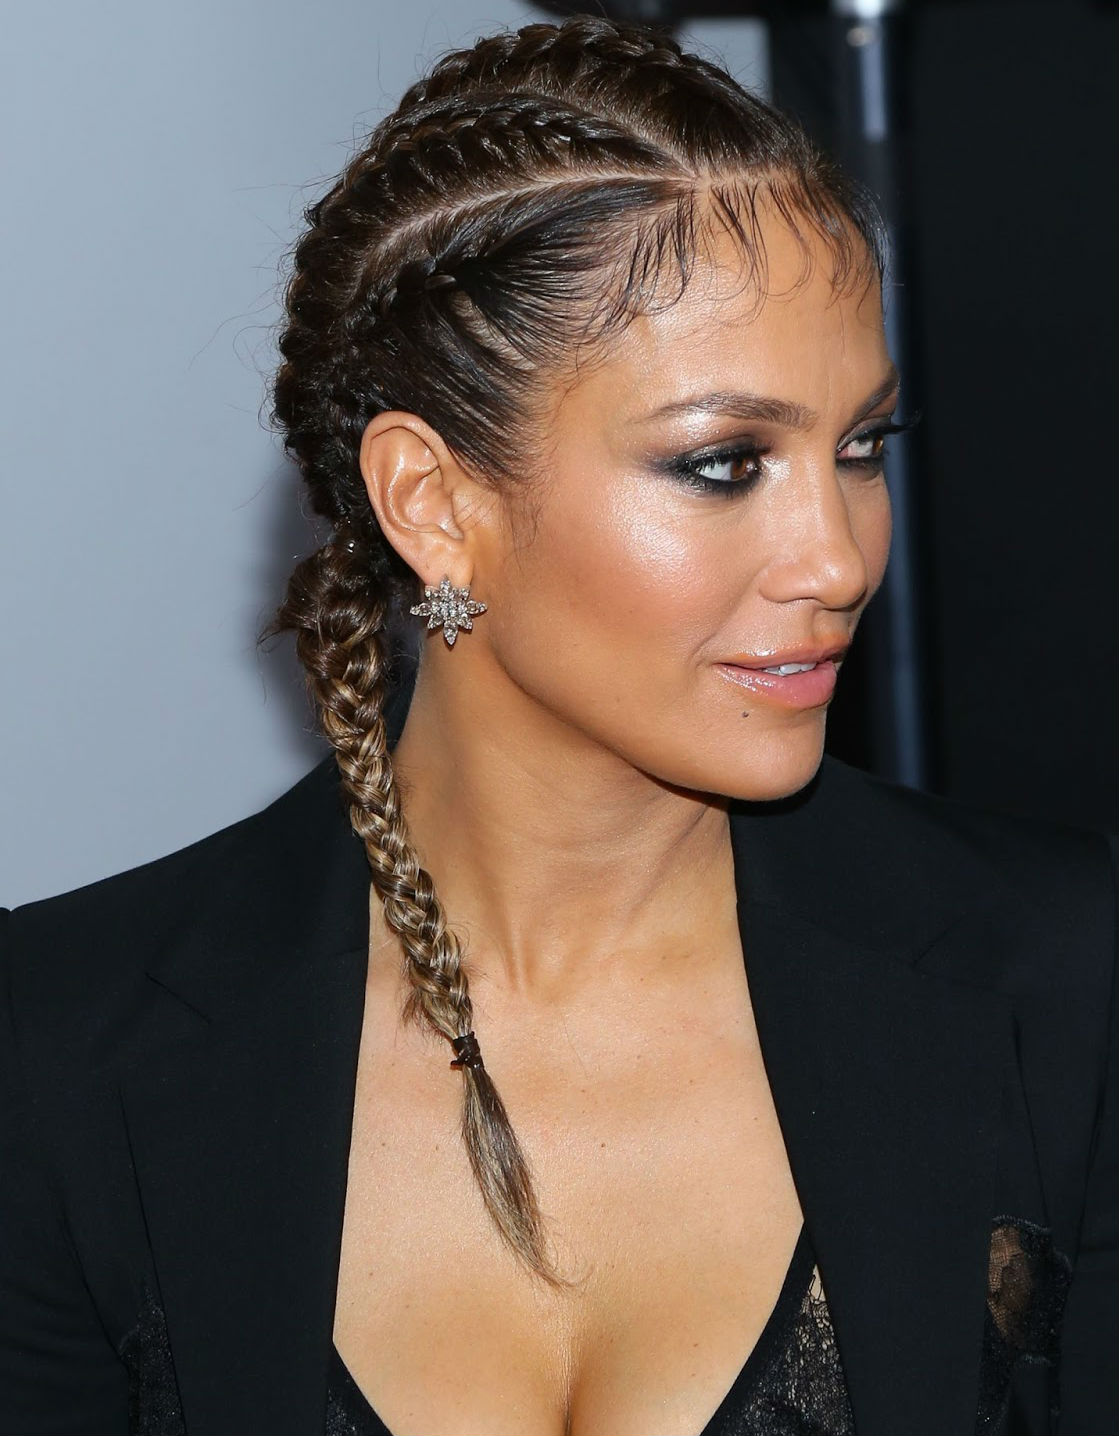 Celebs Proving Braids Are The Hottest Trend Of 2016 04